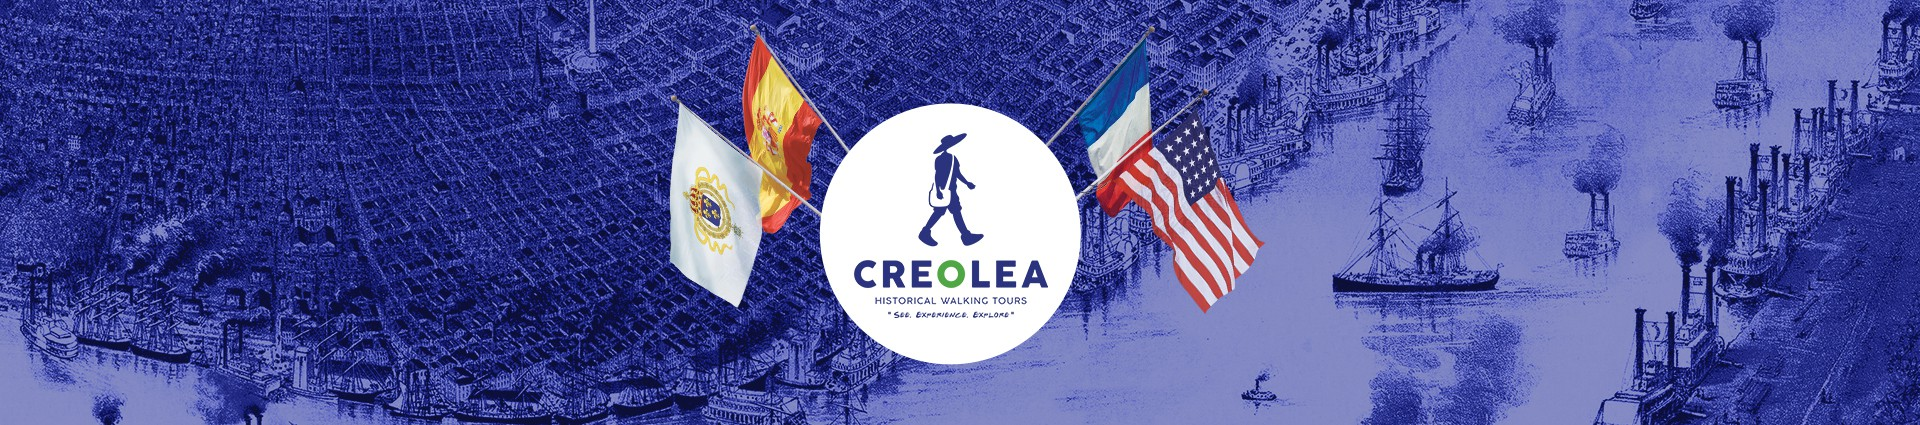 Images for Creolea | Historical Tours website